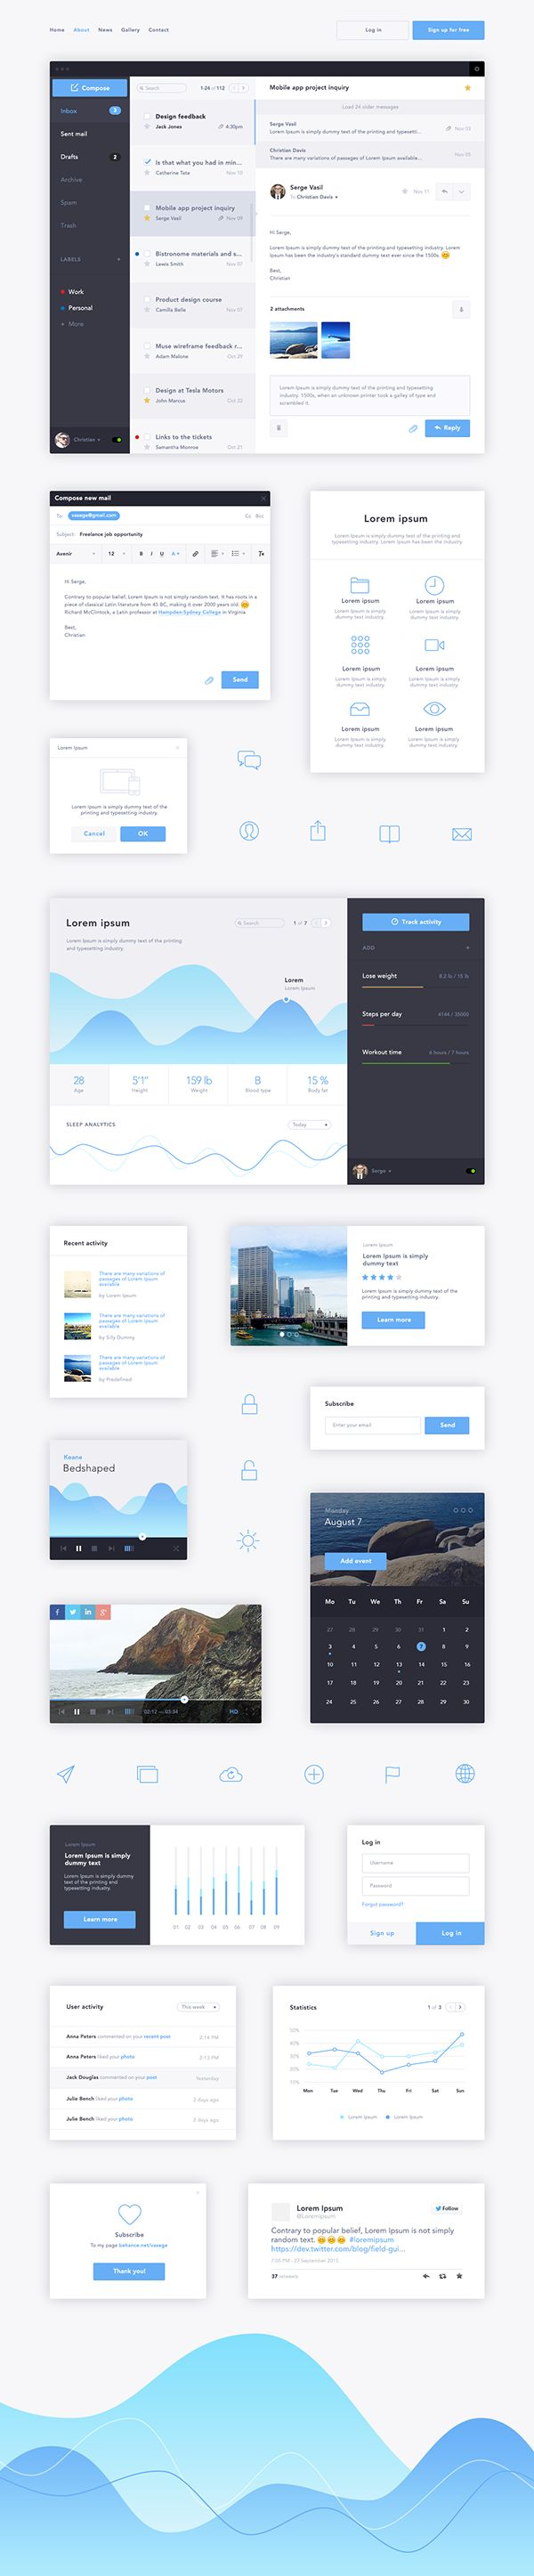 Flat Blue UI Kit on Behance